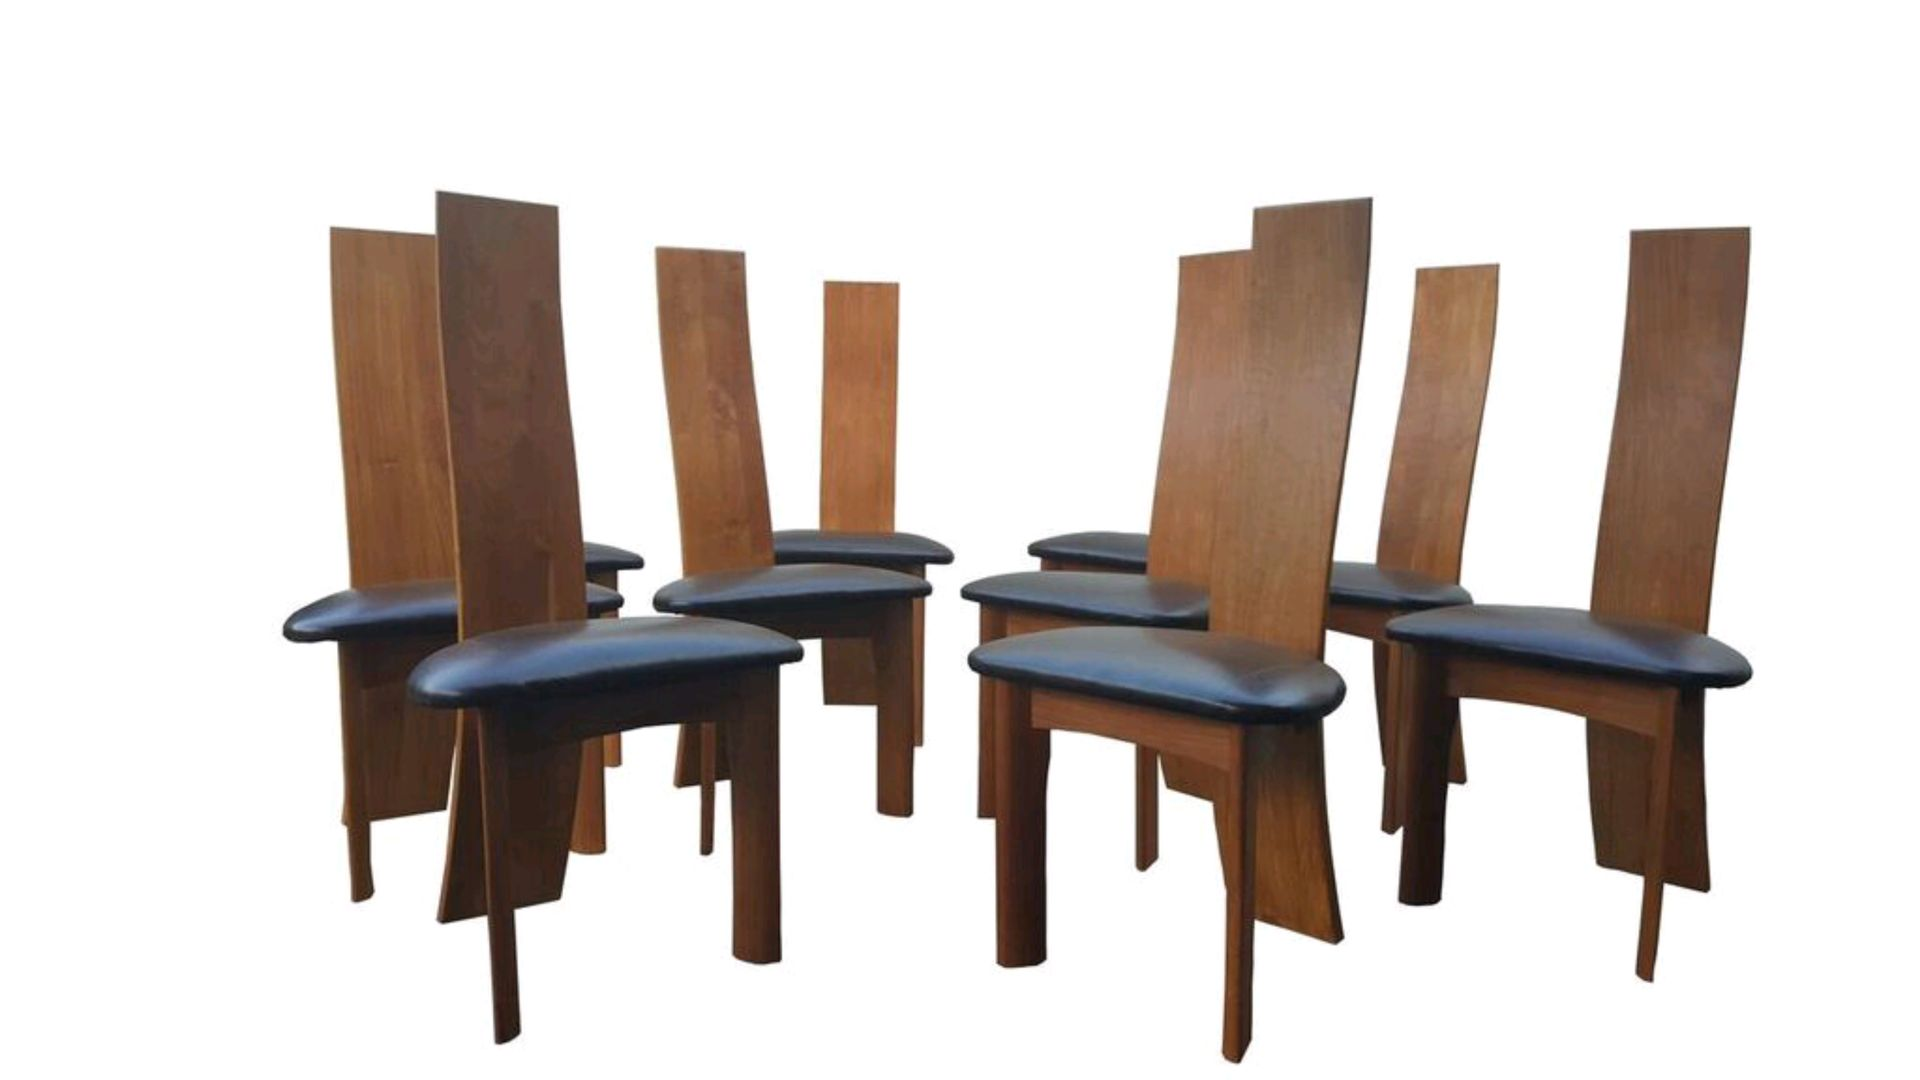 Danish modern dining chairs by bob og dries van den bergh for Modern dining chairs australia